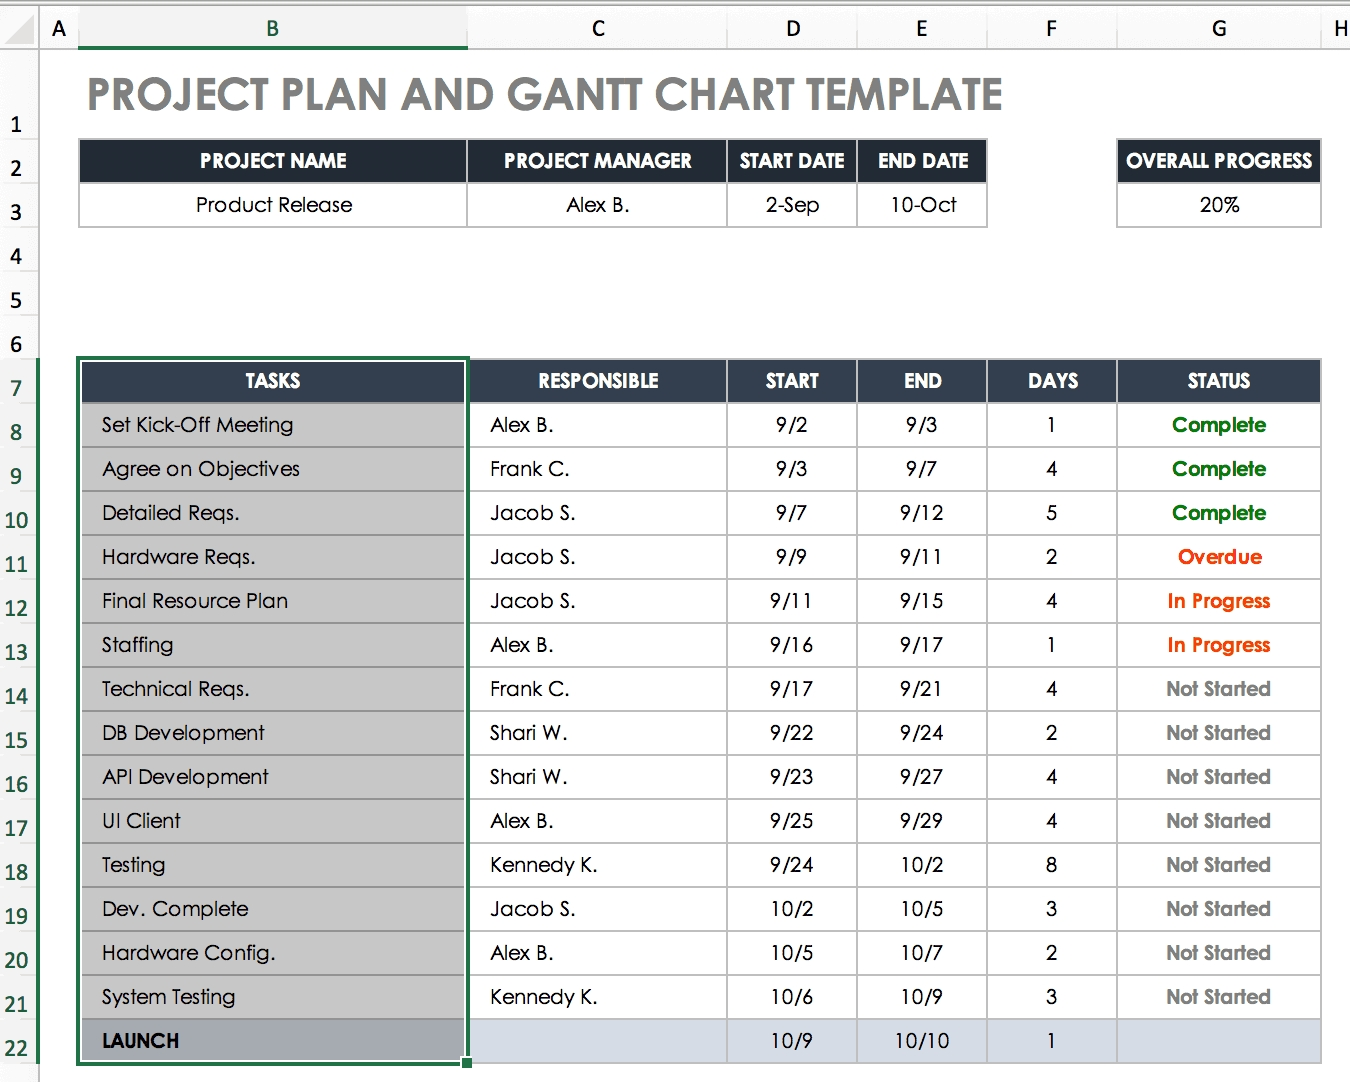 Create A Gantt Chart In Excel: Instructions & Tutorial